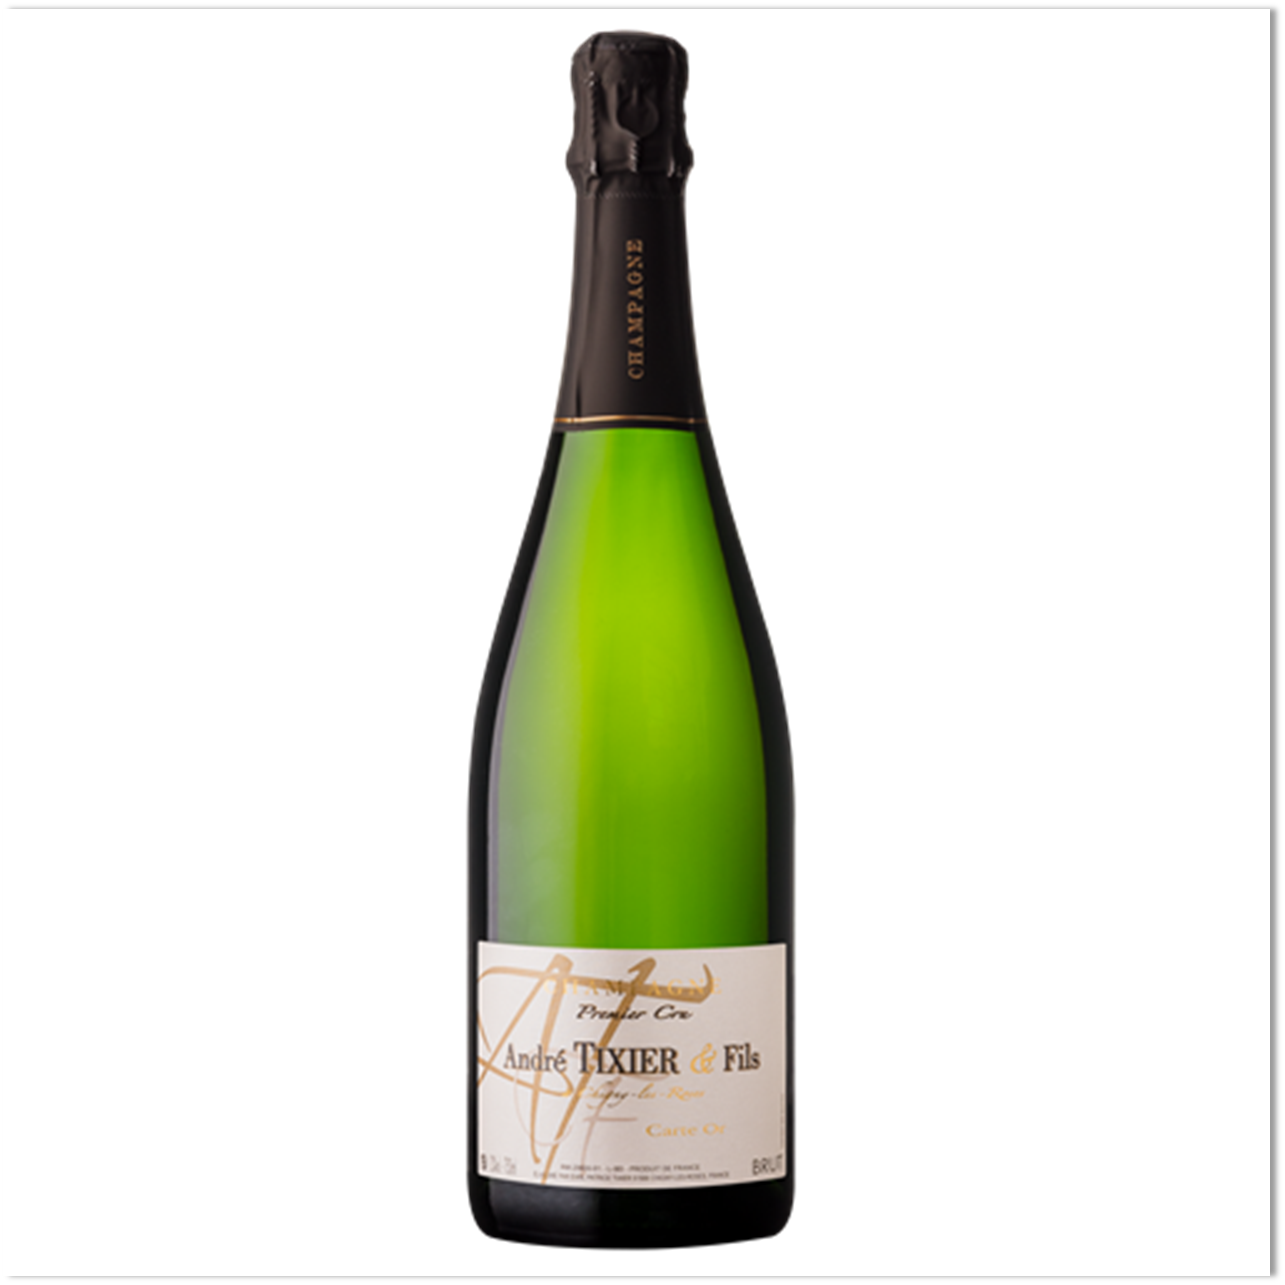 CHAMPAGNE ANDRÉ TIXIER & FILS Carte d'Or